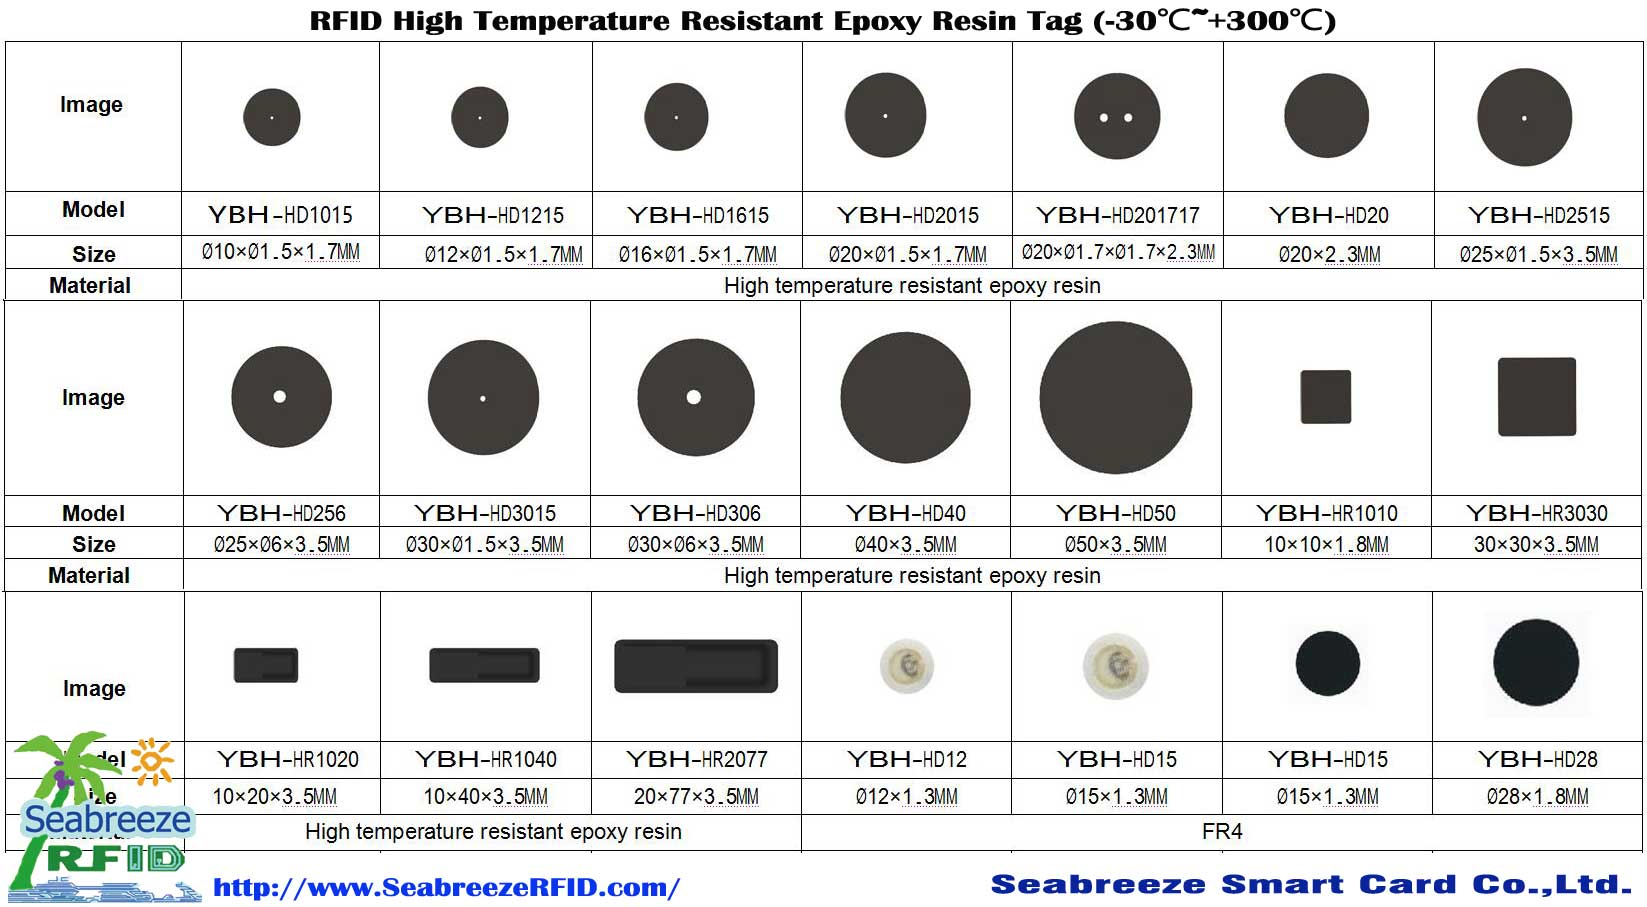 RFID High Temperature Resistant Epoxy Resin Tag, RFID High Temperature Resistant Laundry Tag, SeabreezeRFID.com dan